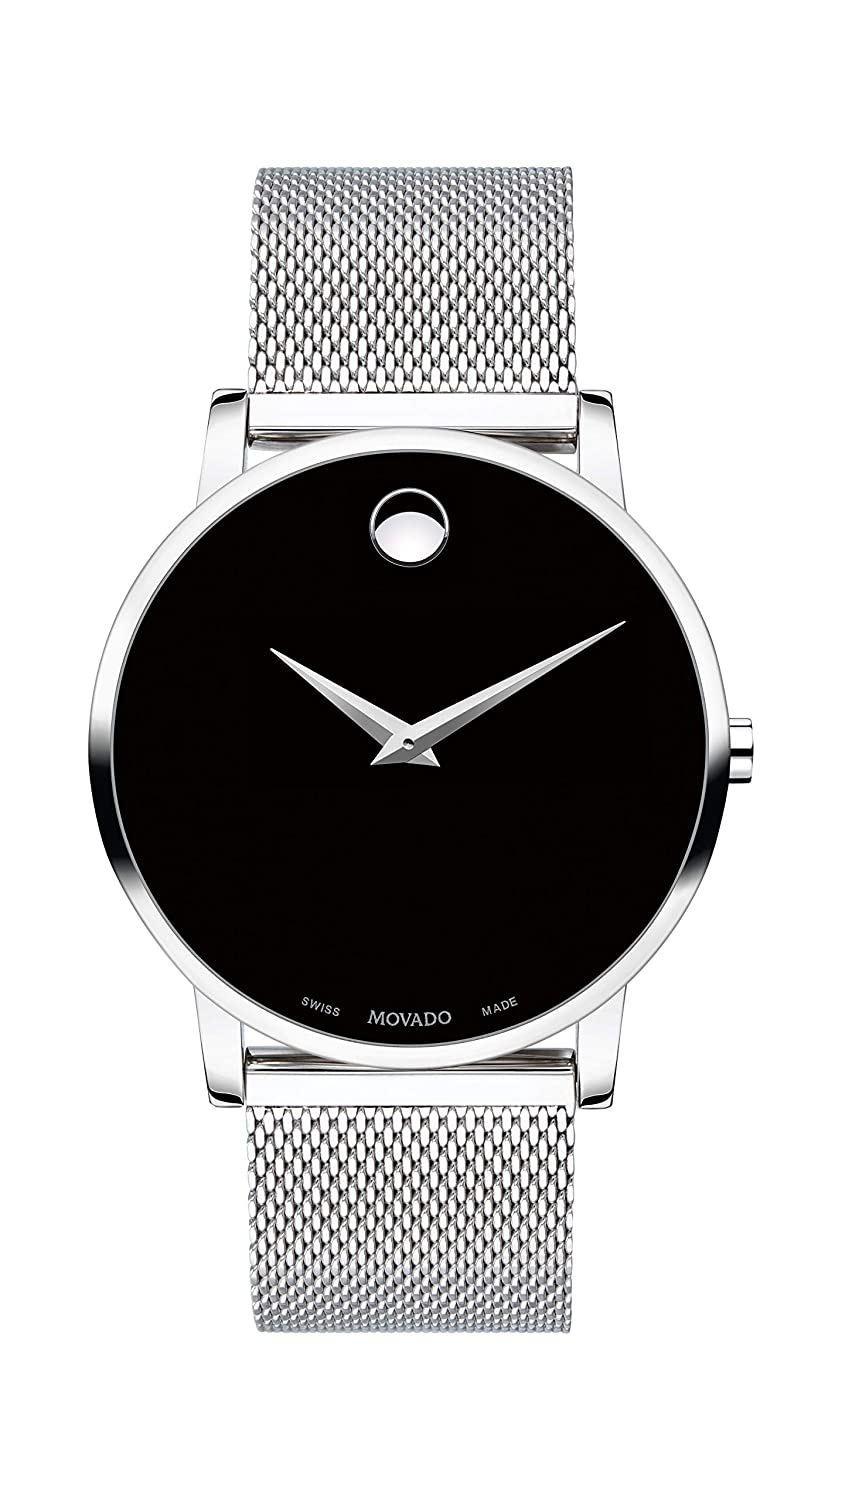 Movado Men S Museum Stainless Steel Watch With Concave Dot Museum Dial Black Silver Model 607219